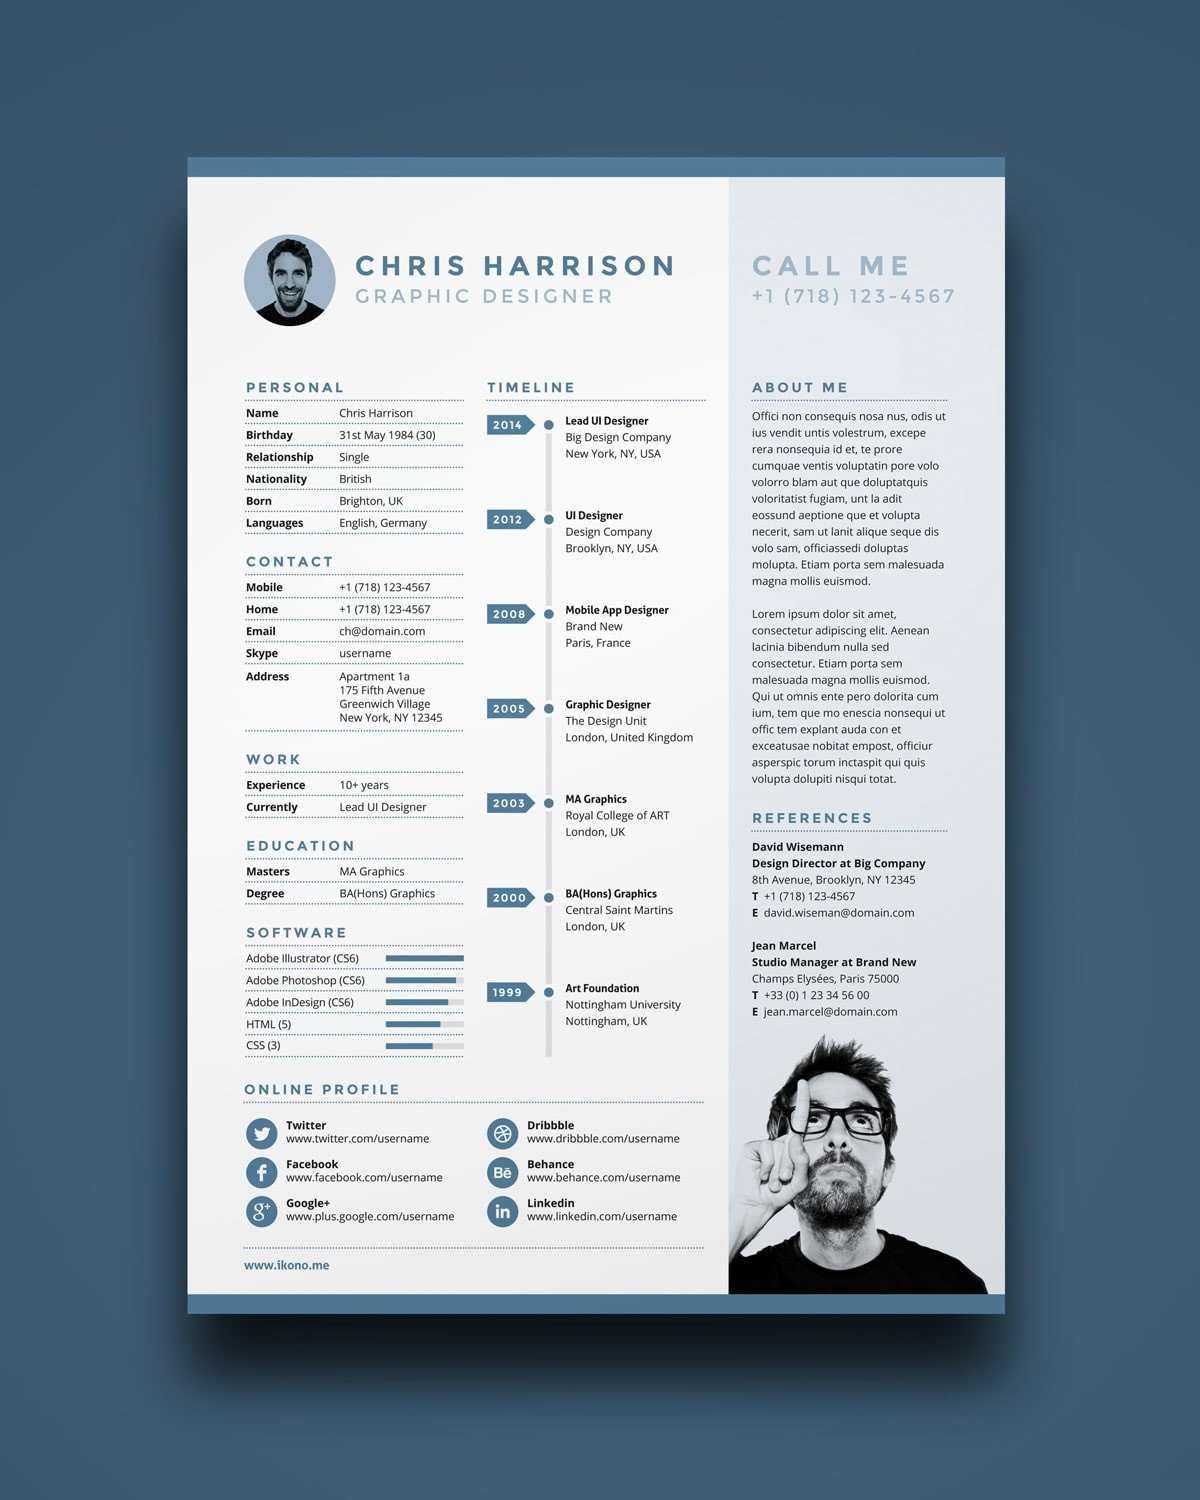 photoshop illustrator indesign resume templates objective for yahoo answers examples call Resume Illustrator Resume Templates